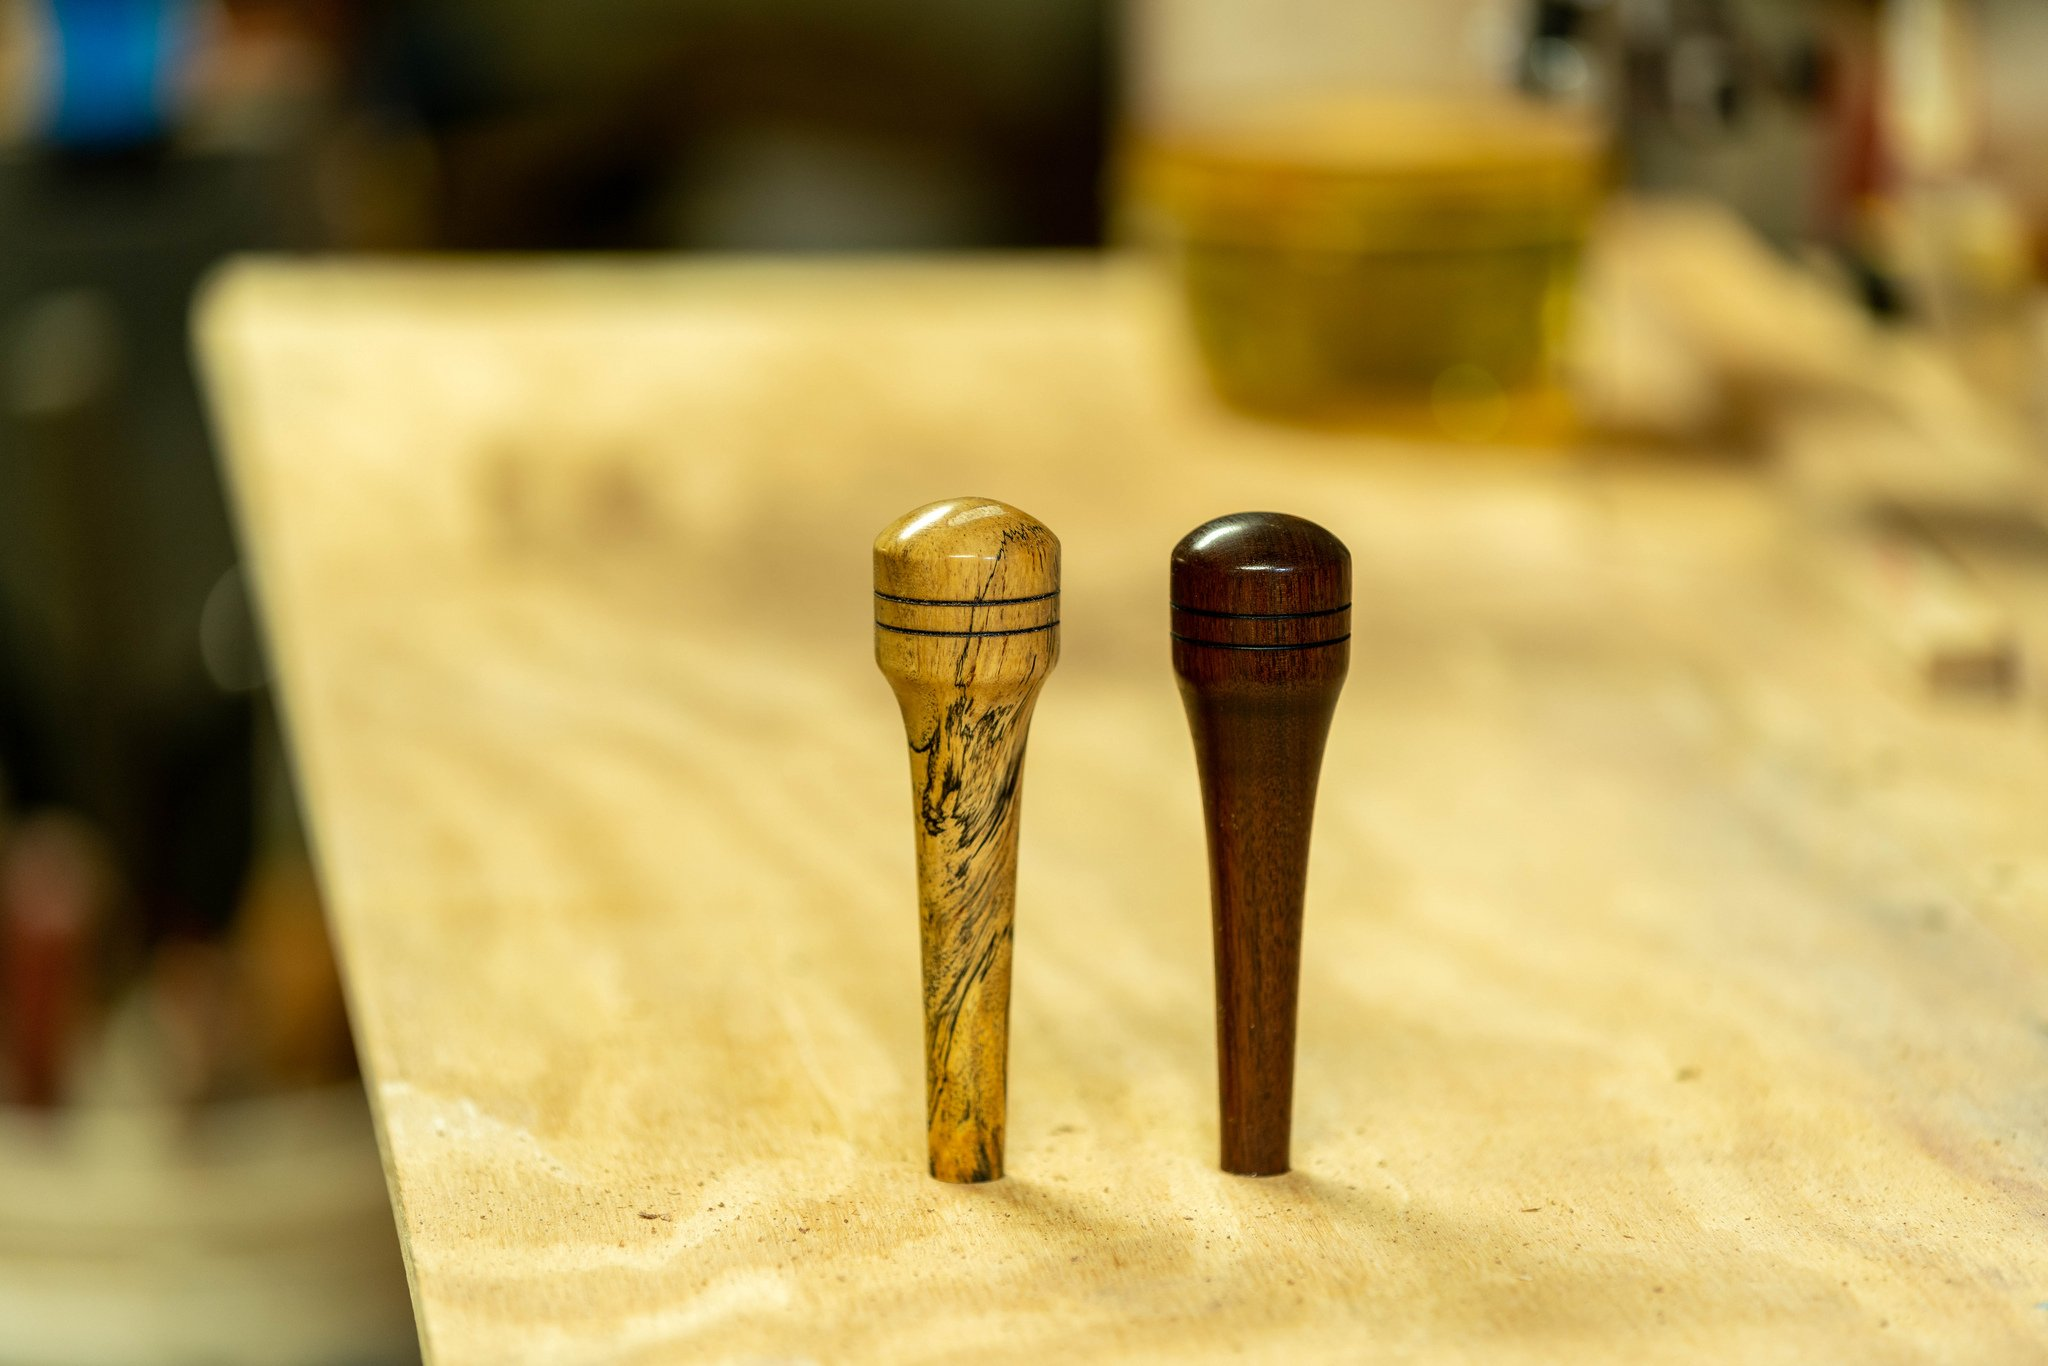 How-To Make A Wooden Beer Tap Handle